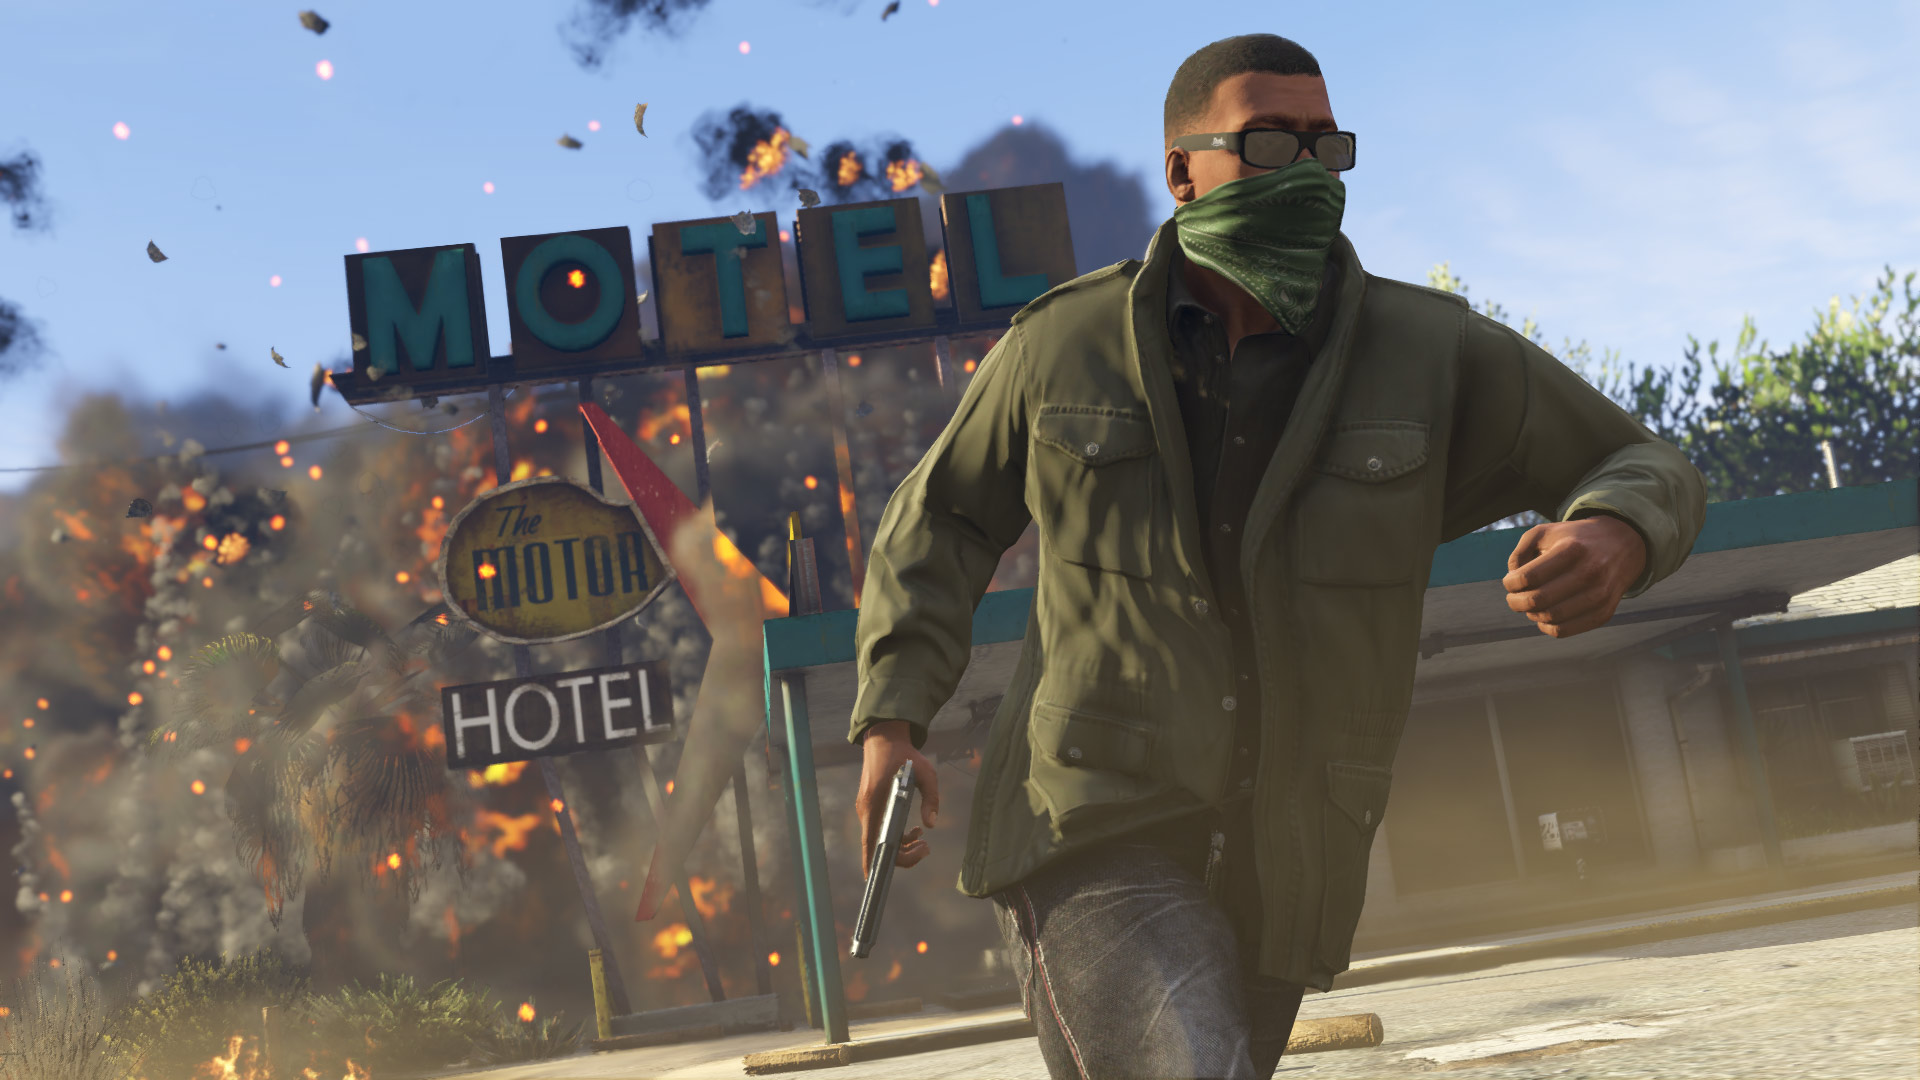 An image of a character from Grand Theft Auto V running away from an explosion.